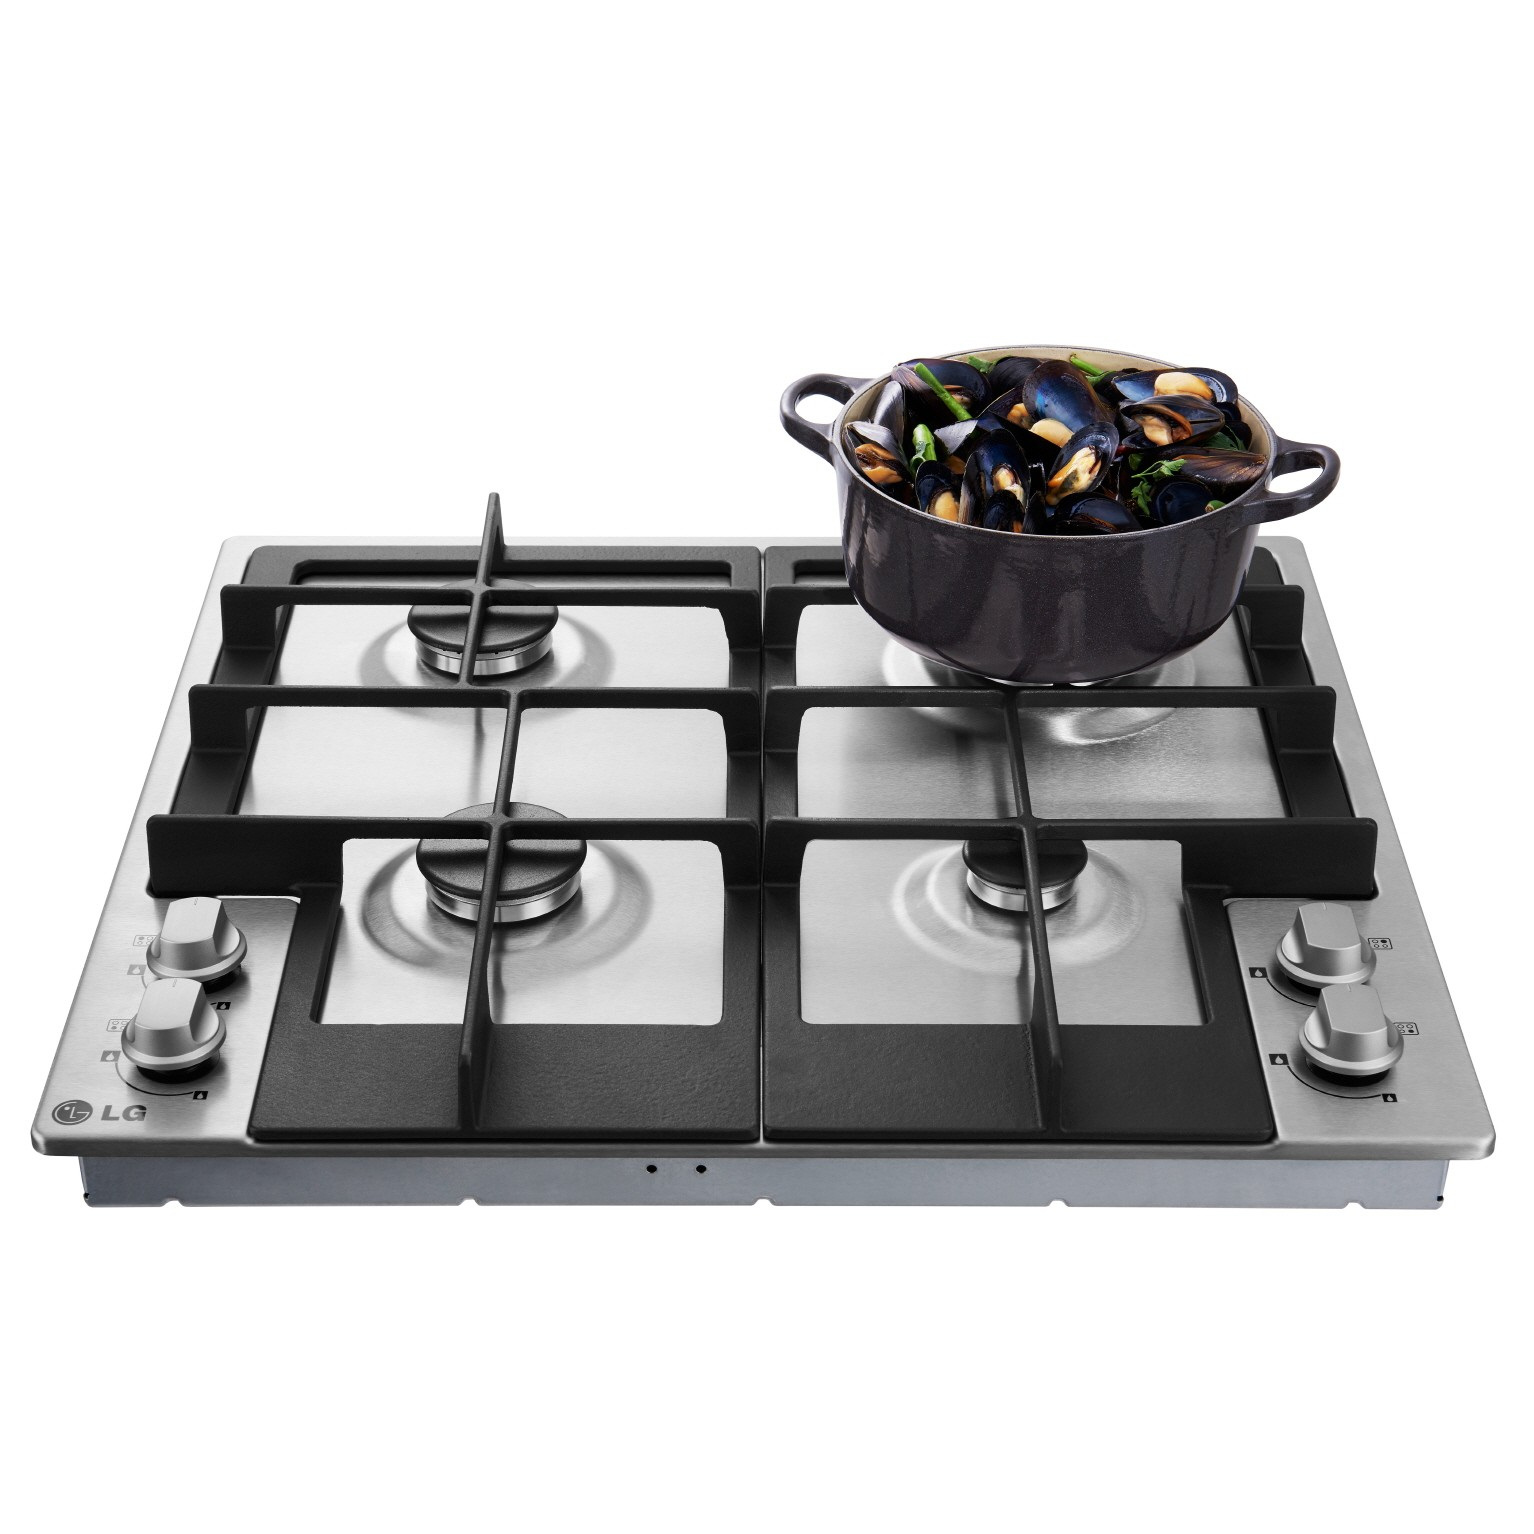 LG Studio gas cooktop with a cooking pot on the right upper section